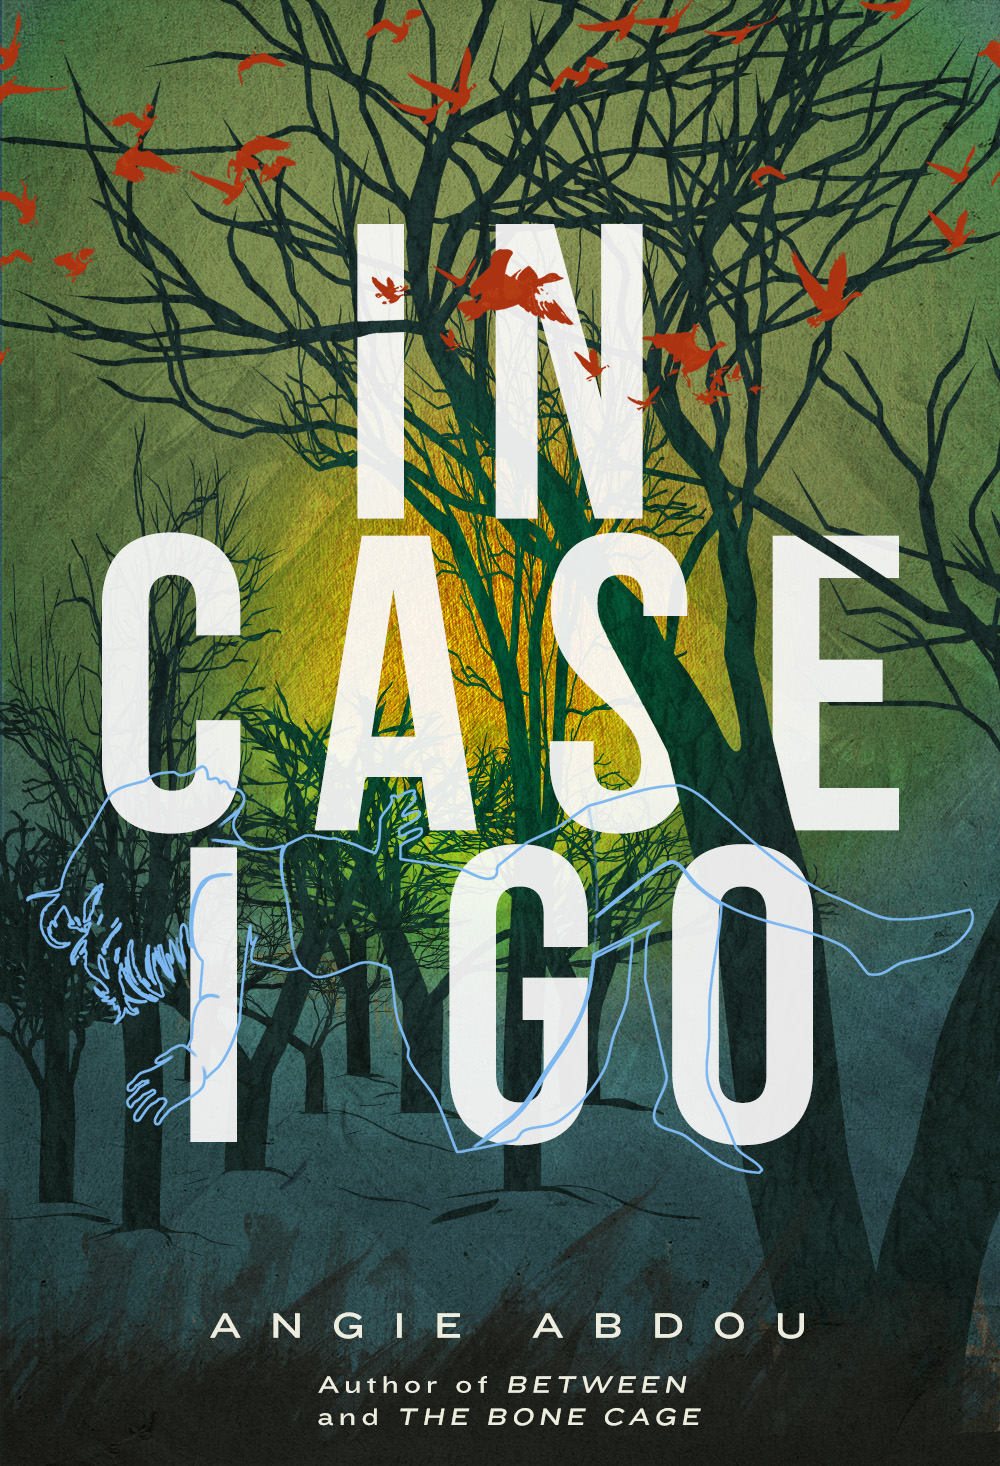 Angie Abdou.  In Case I Go . Arsenal Pulp Press. $17.95, 272 pp., ISBN:978-1551527031